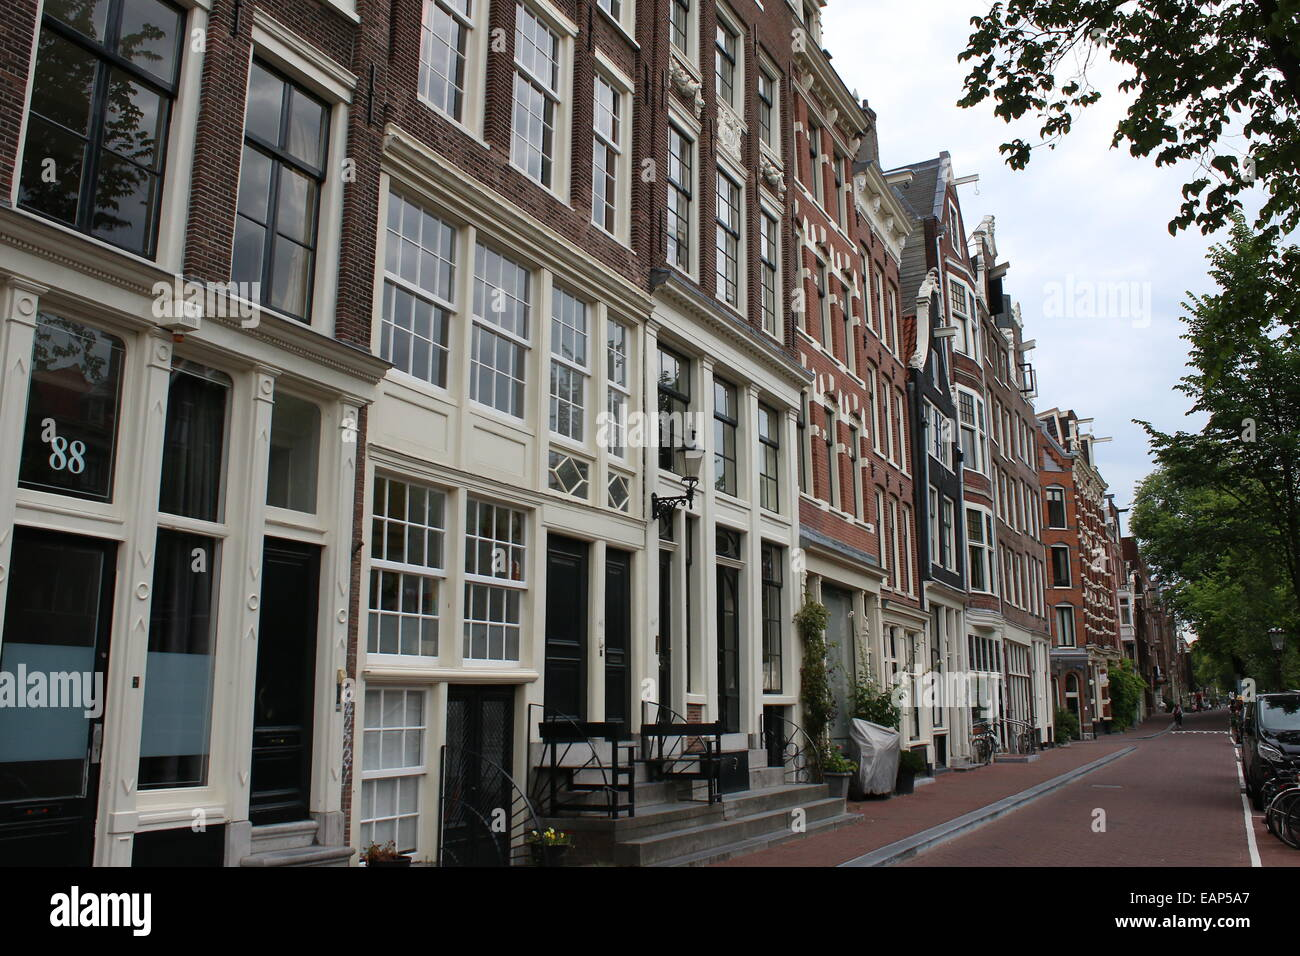 17th and 18th century mansions and warehouses at Prinsengracht canal  Amsterdam, the Netherlands - Stock Image